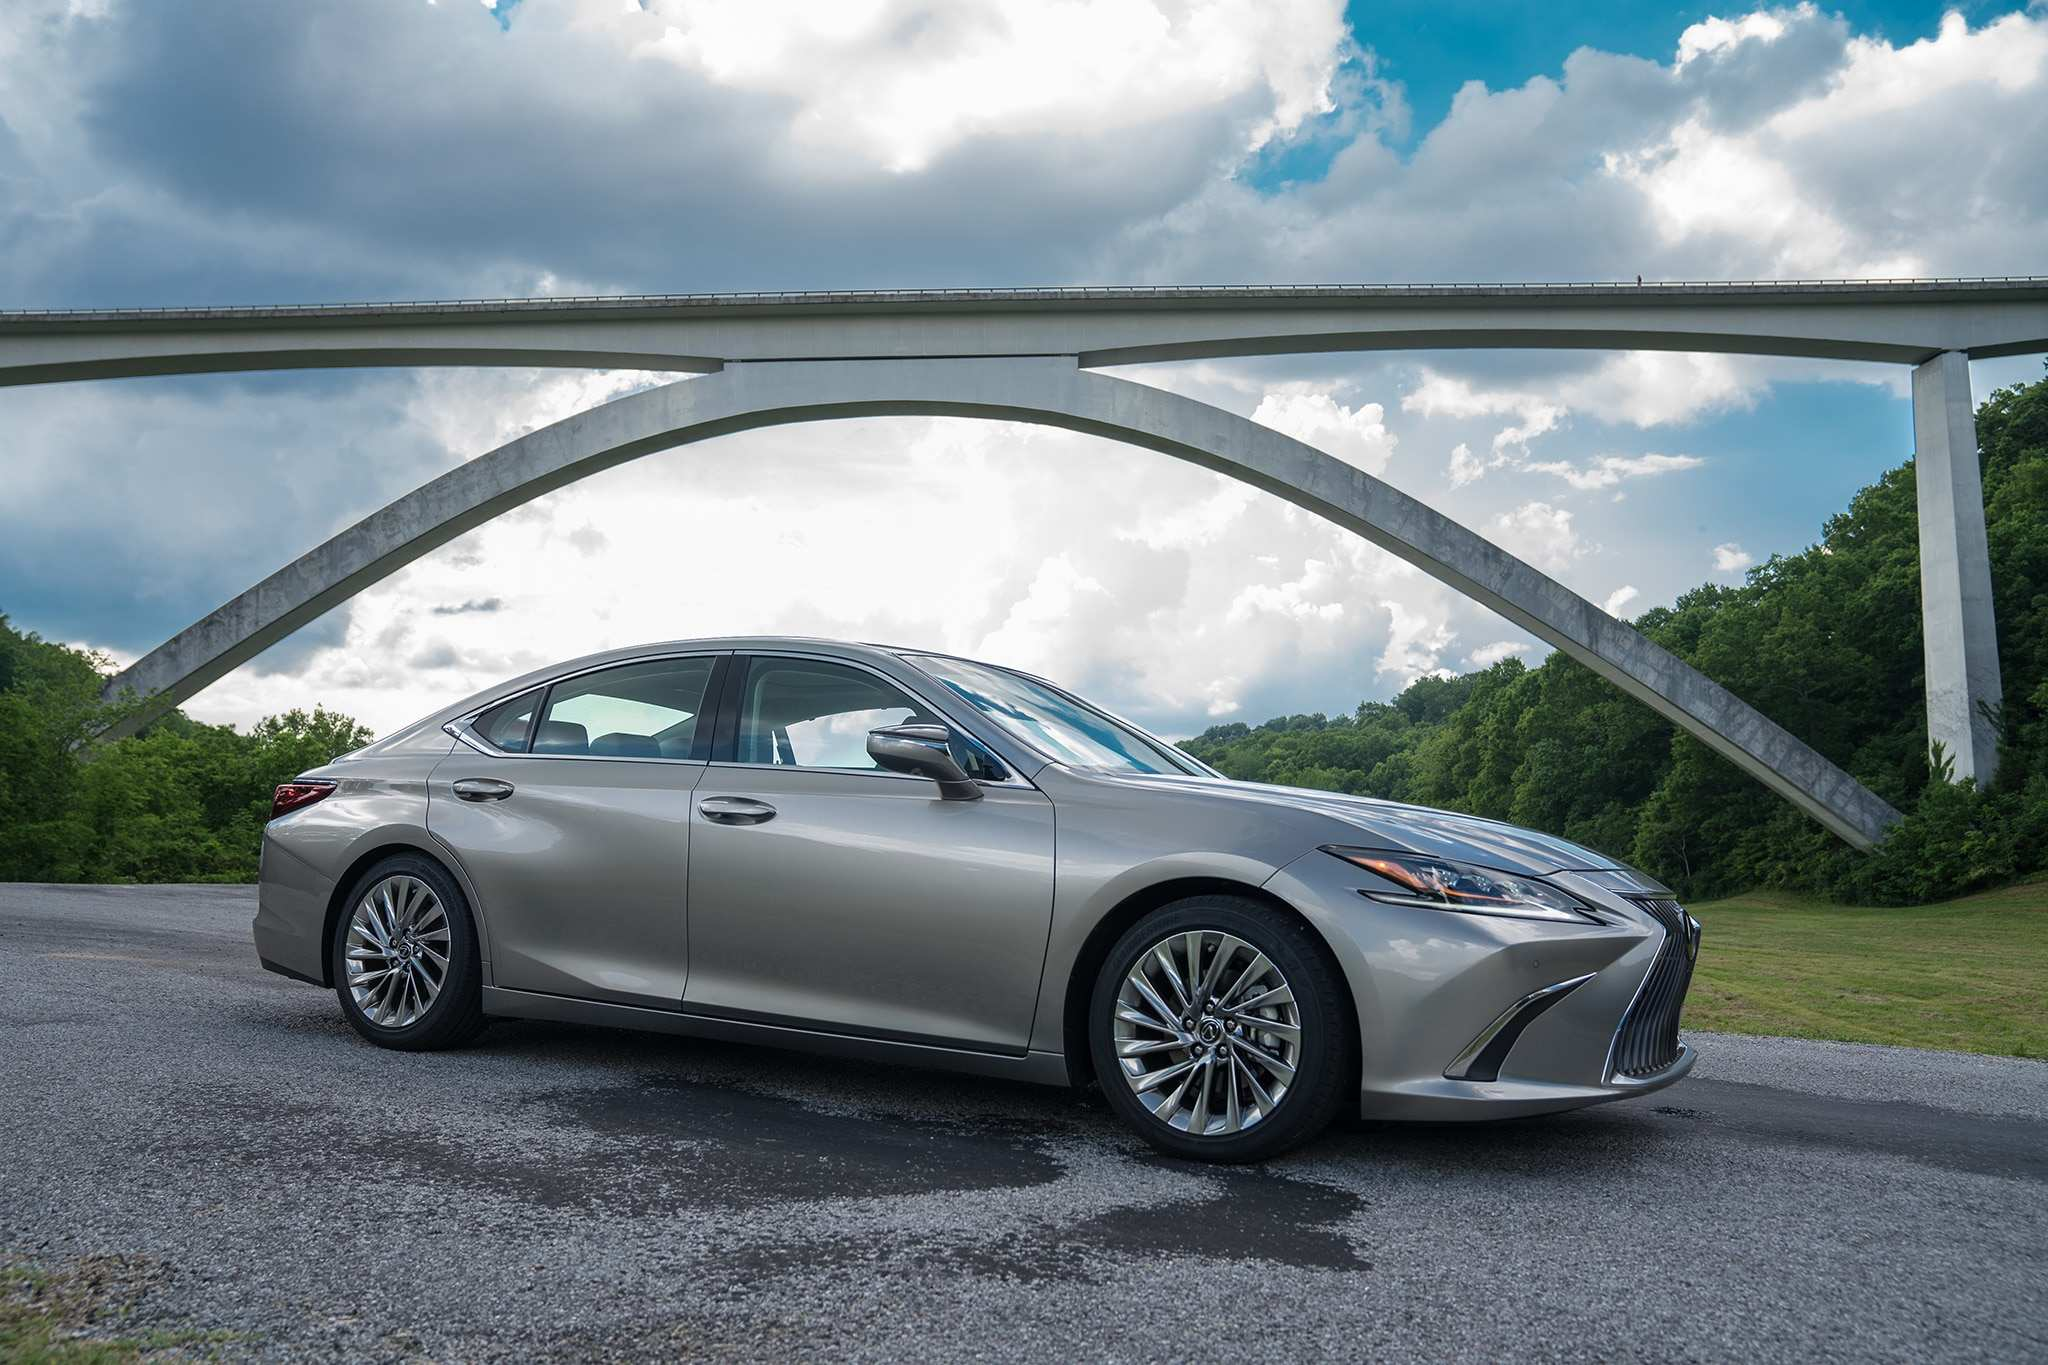 84 Best Review 2020 Lexus Es 350 Brochure Concept with 2020 Lexus Es 350 Brochure